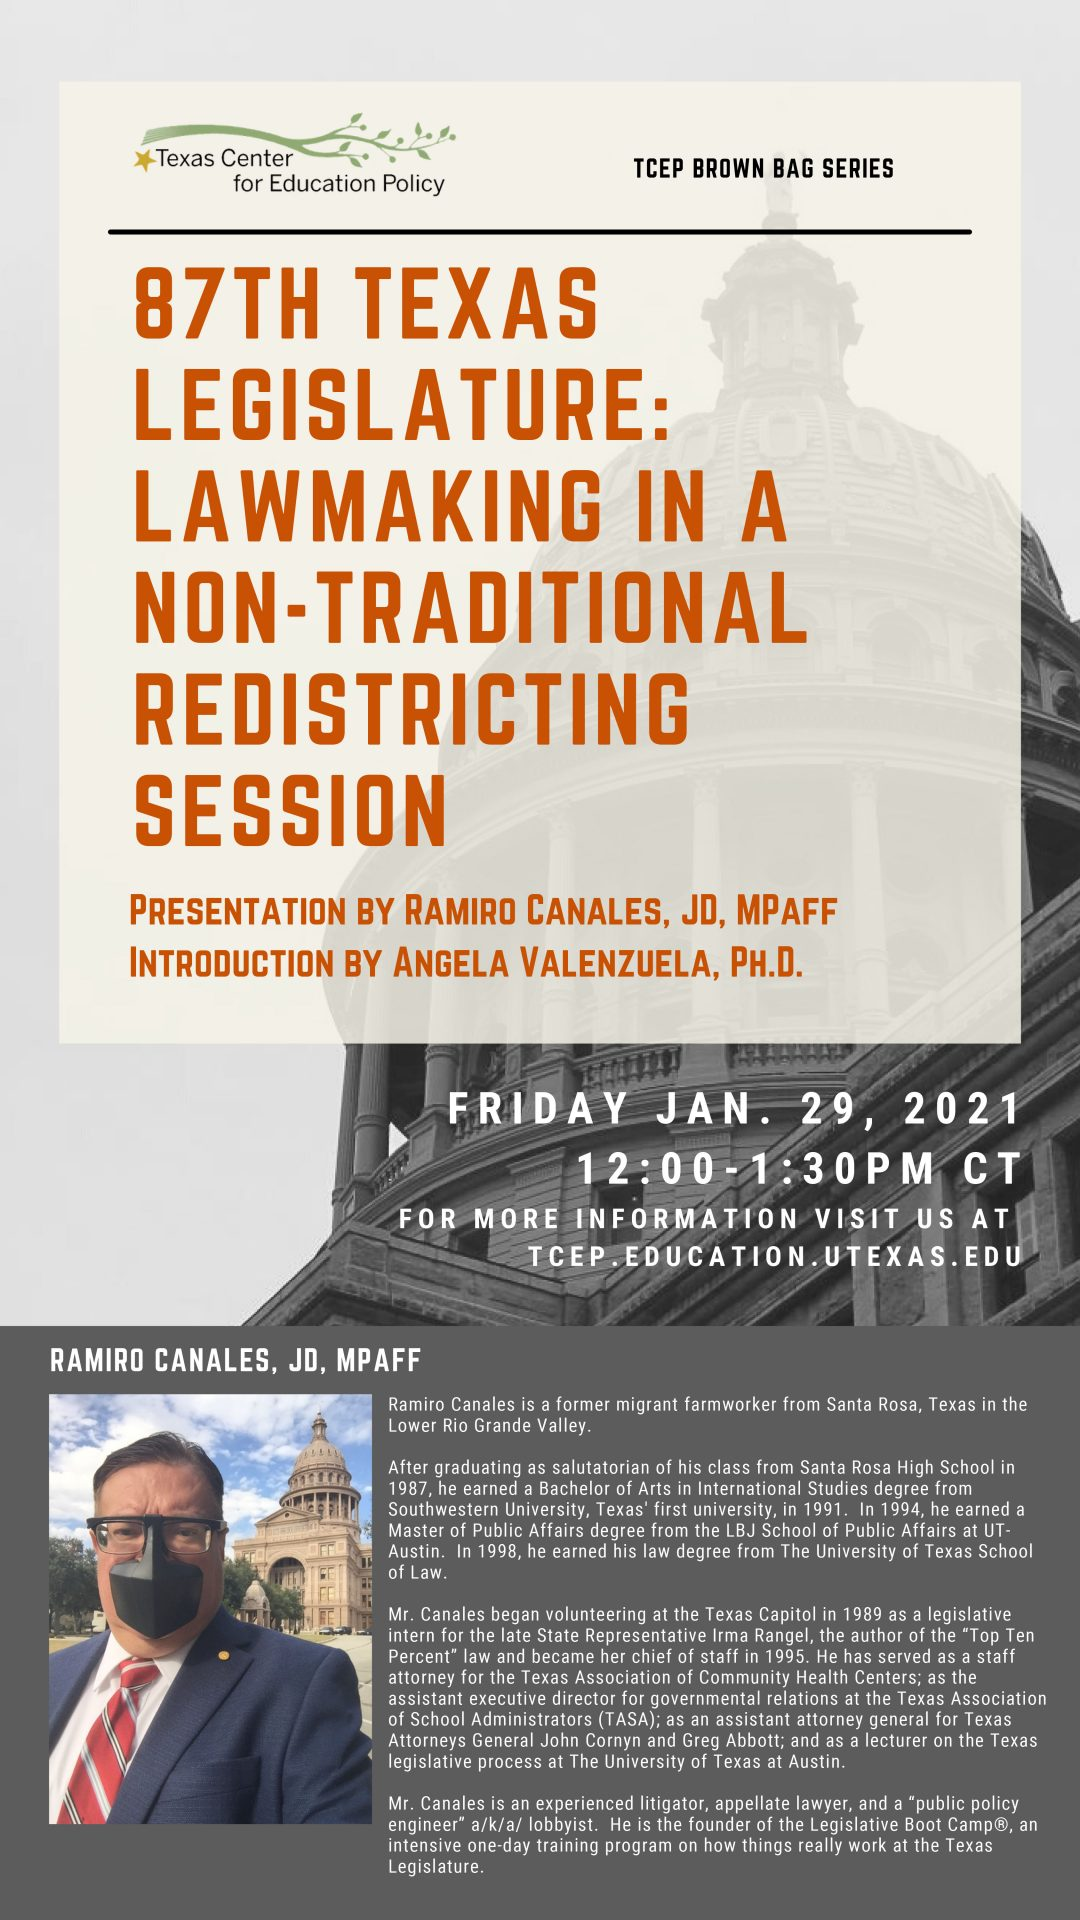 Lawmaking in a non-traditional redistricting session promo Image, Info provided in post